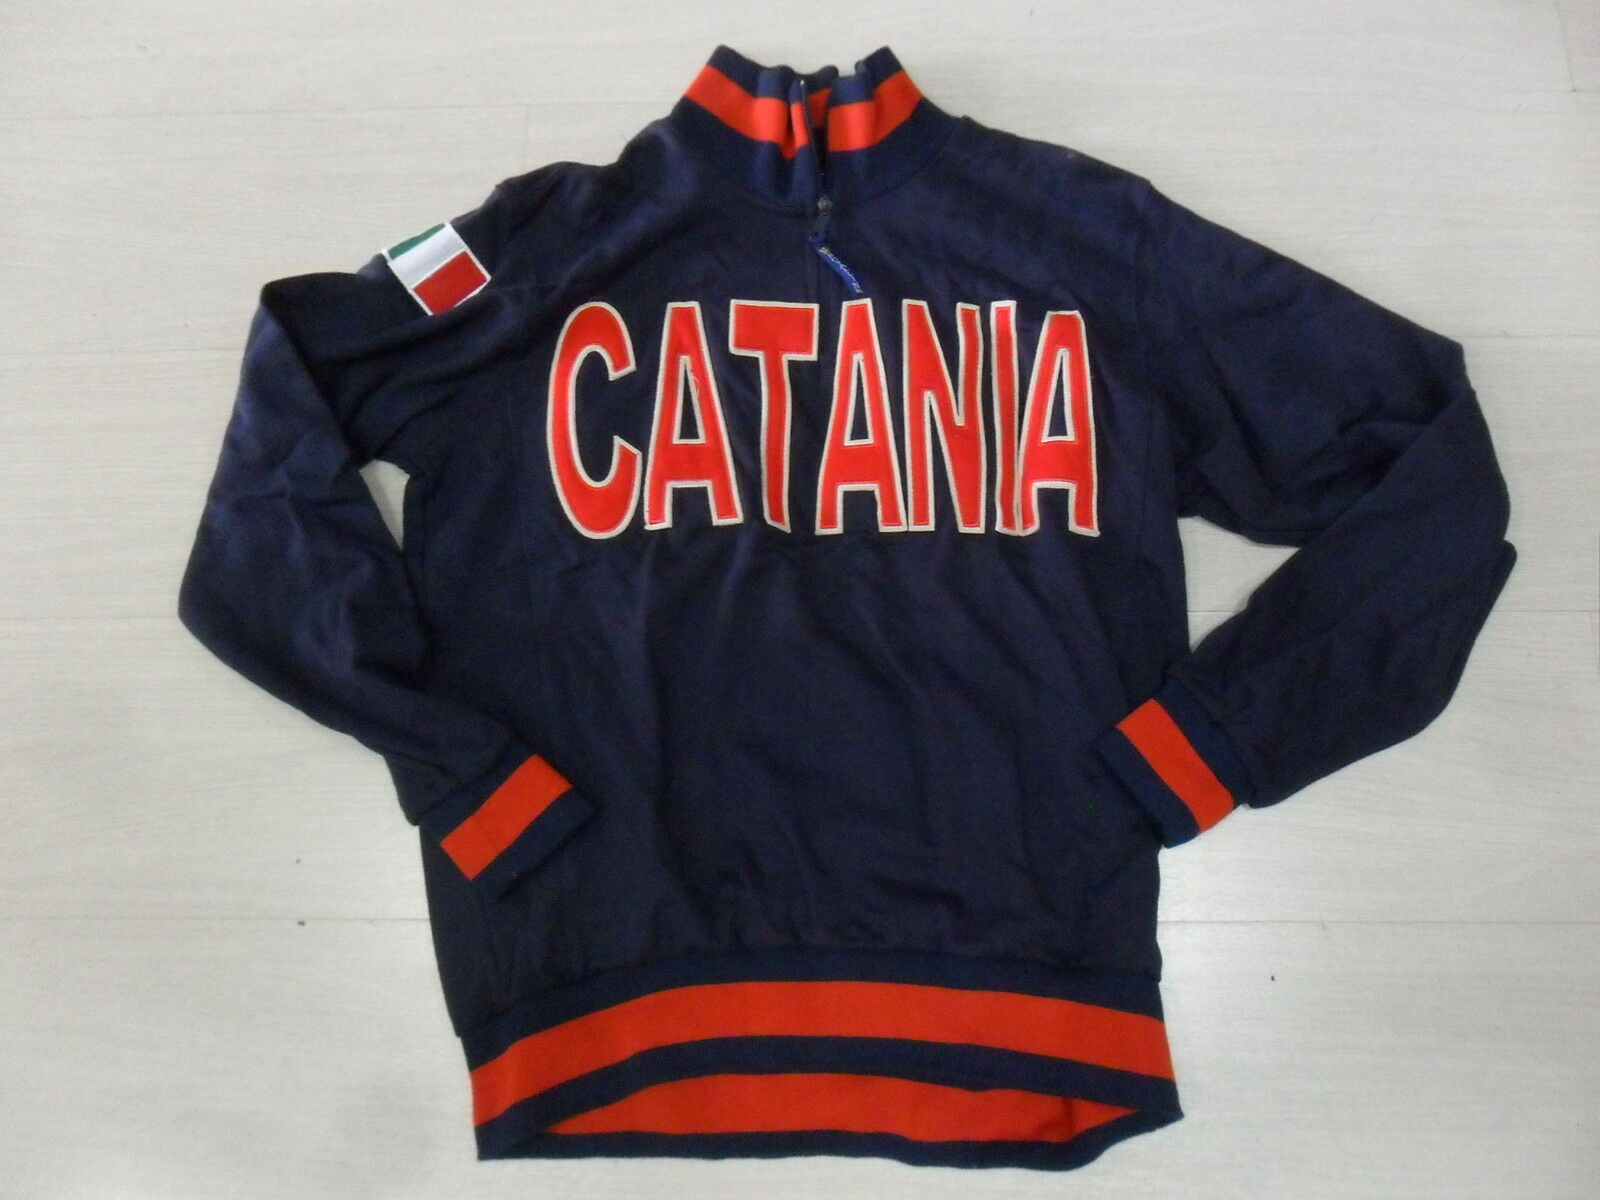 1321 size XL SWEAT-SHIRT DEMI FERMETURE ÉCLAIR CATANIA SICILE SICILE VESTE